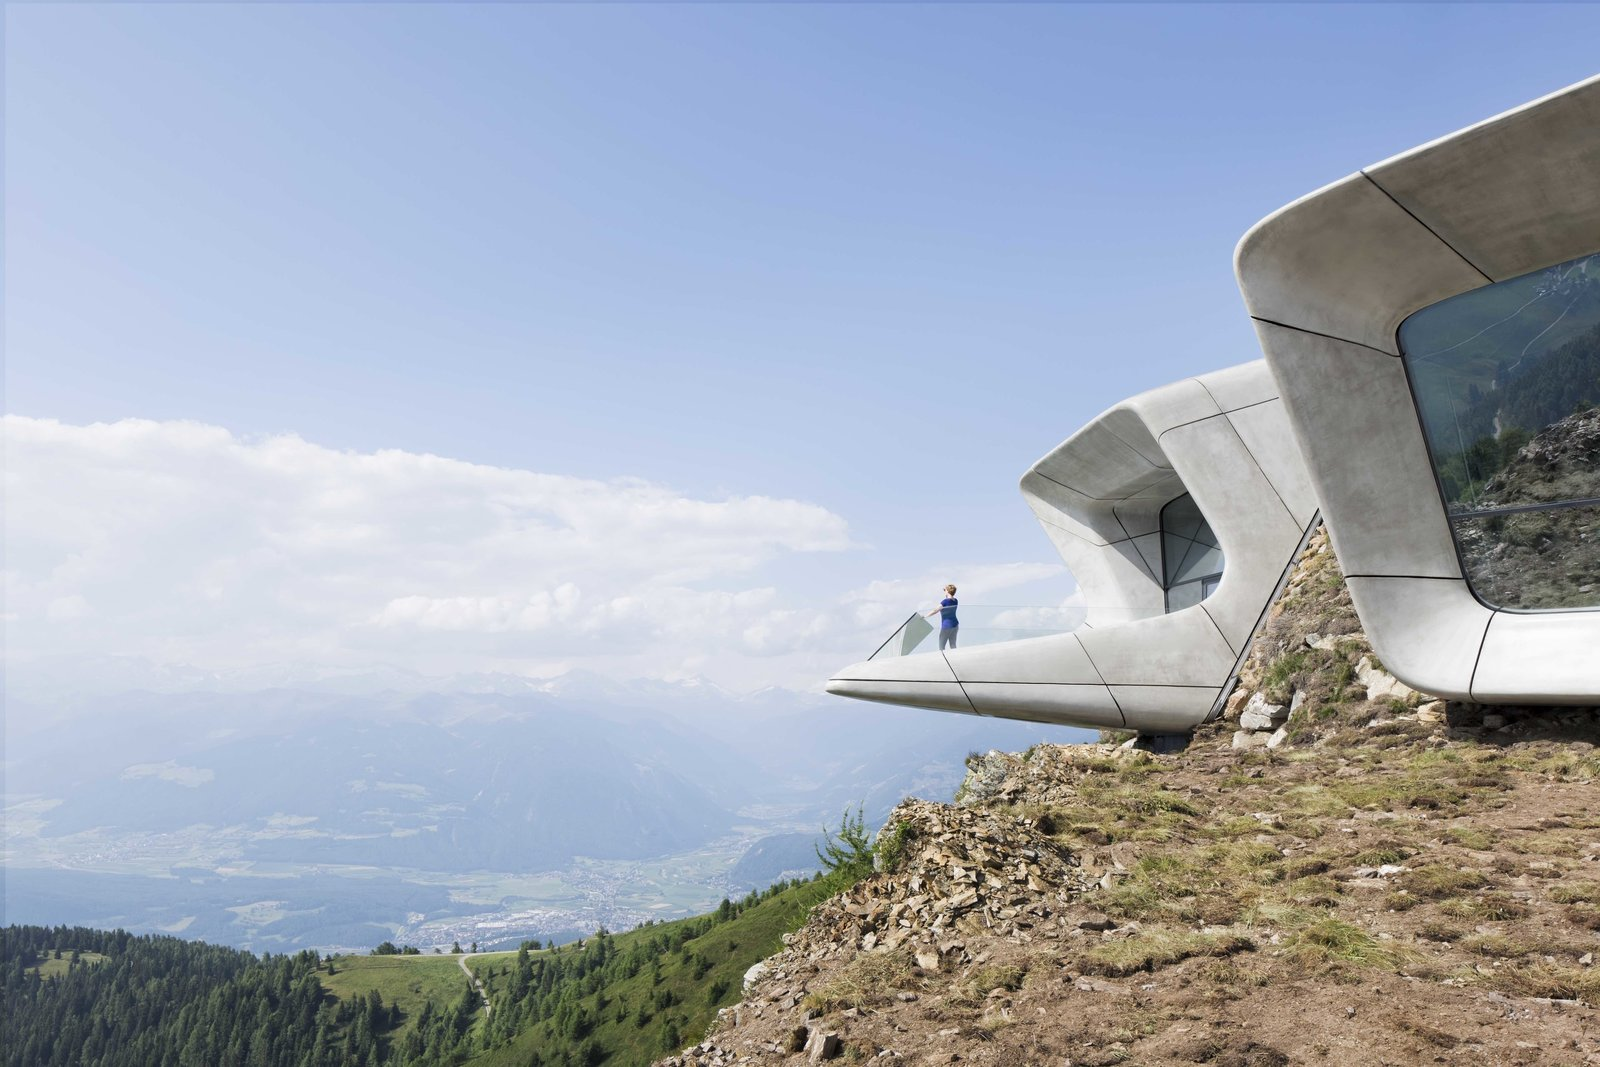 Photo 1 of 5 in Reinhold Messner: A Man and His Museums